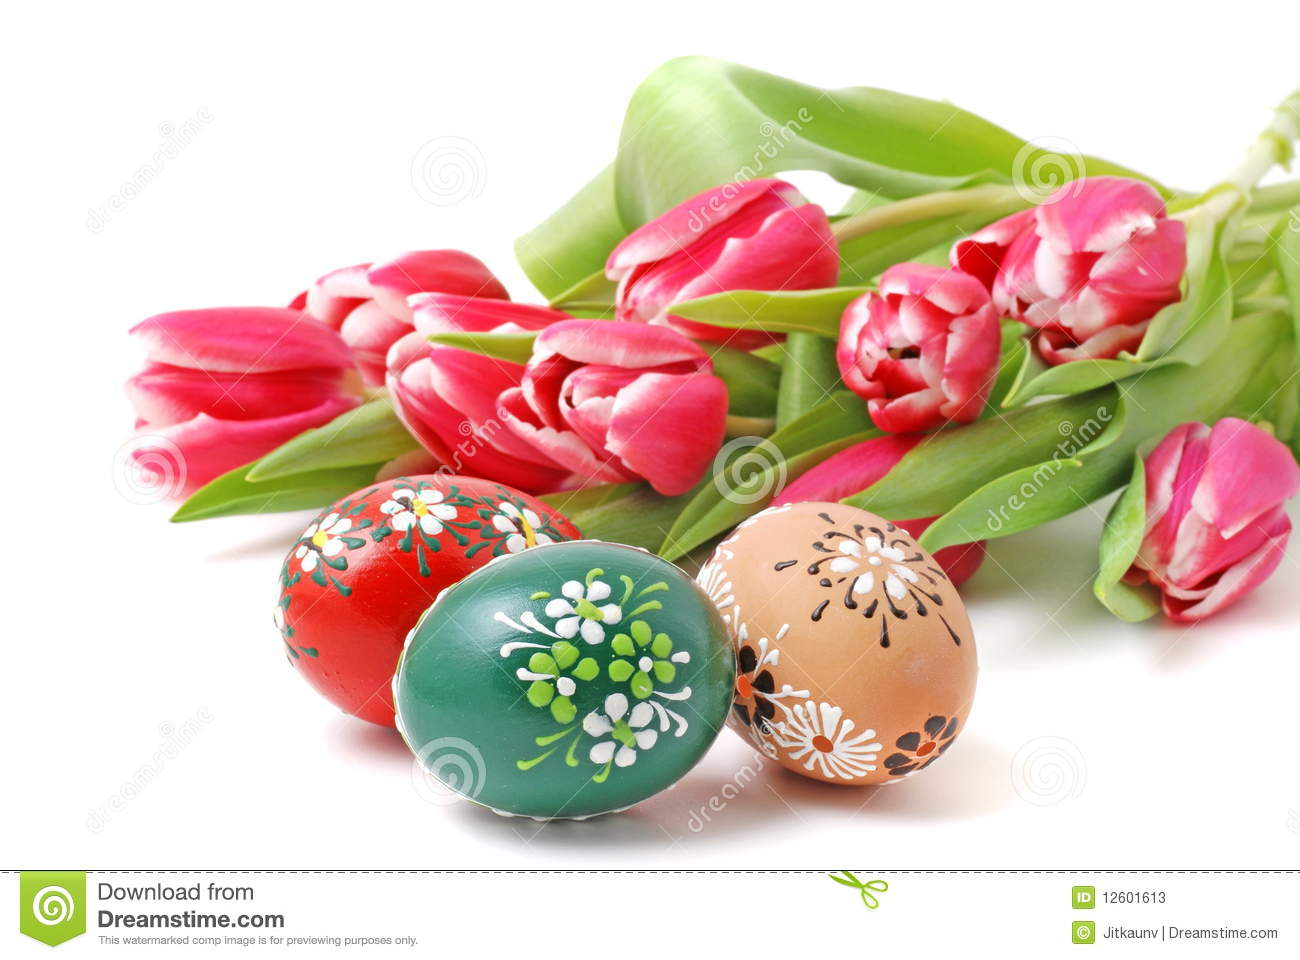 Easter Flowers and Eggs stock image  Image of festive   12601613 Easter Flowers and Eggs